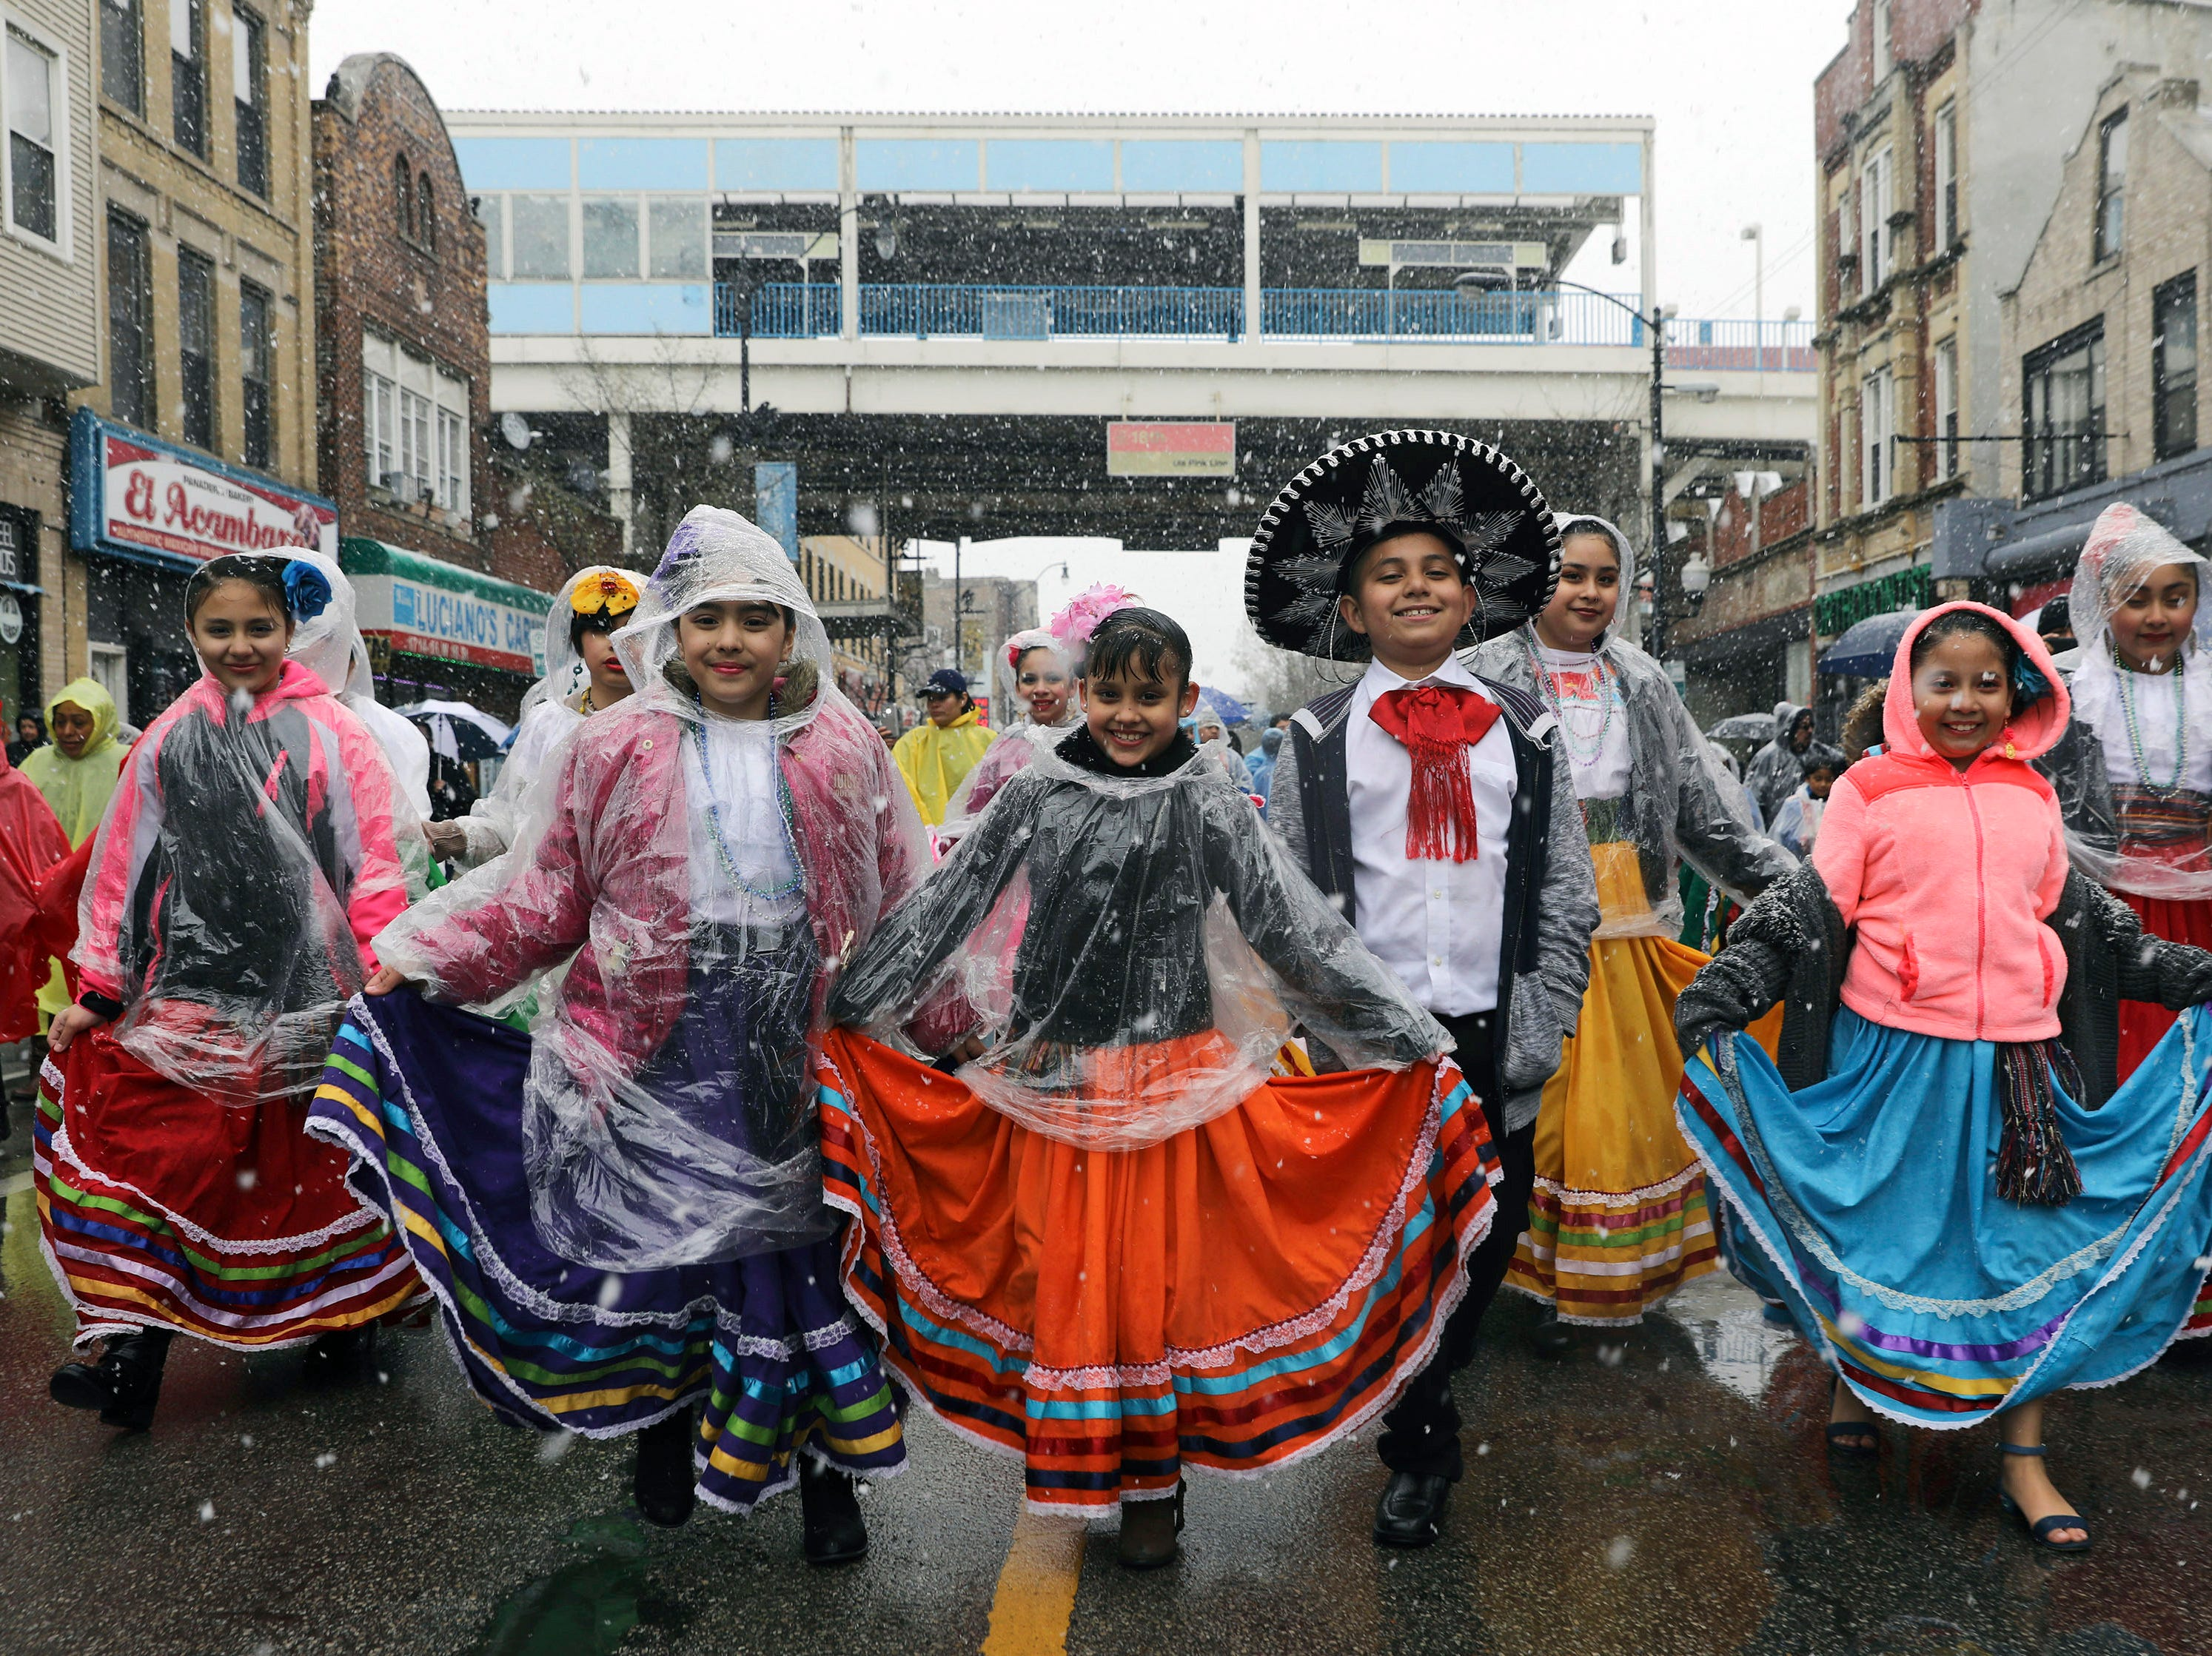 """Children in Mexican folklore outfits brave inclement weather to participate in """"El Dia del Nino,"""" Day of the Child parade, in Pilsen, Ill.,  Saturday, April 27, 2019."""